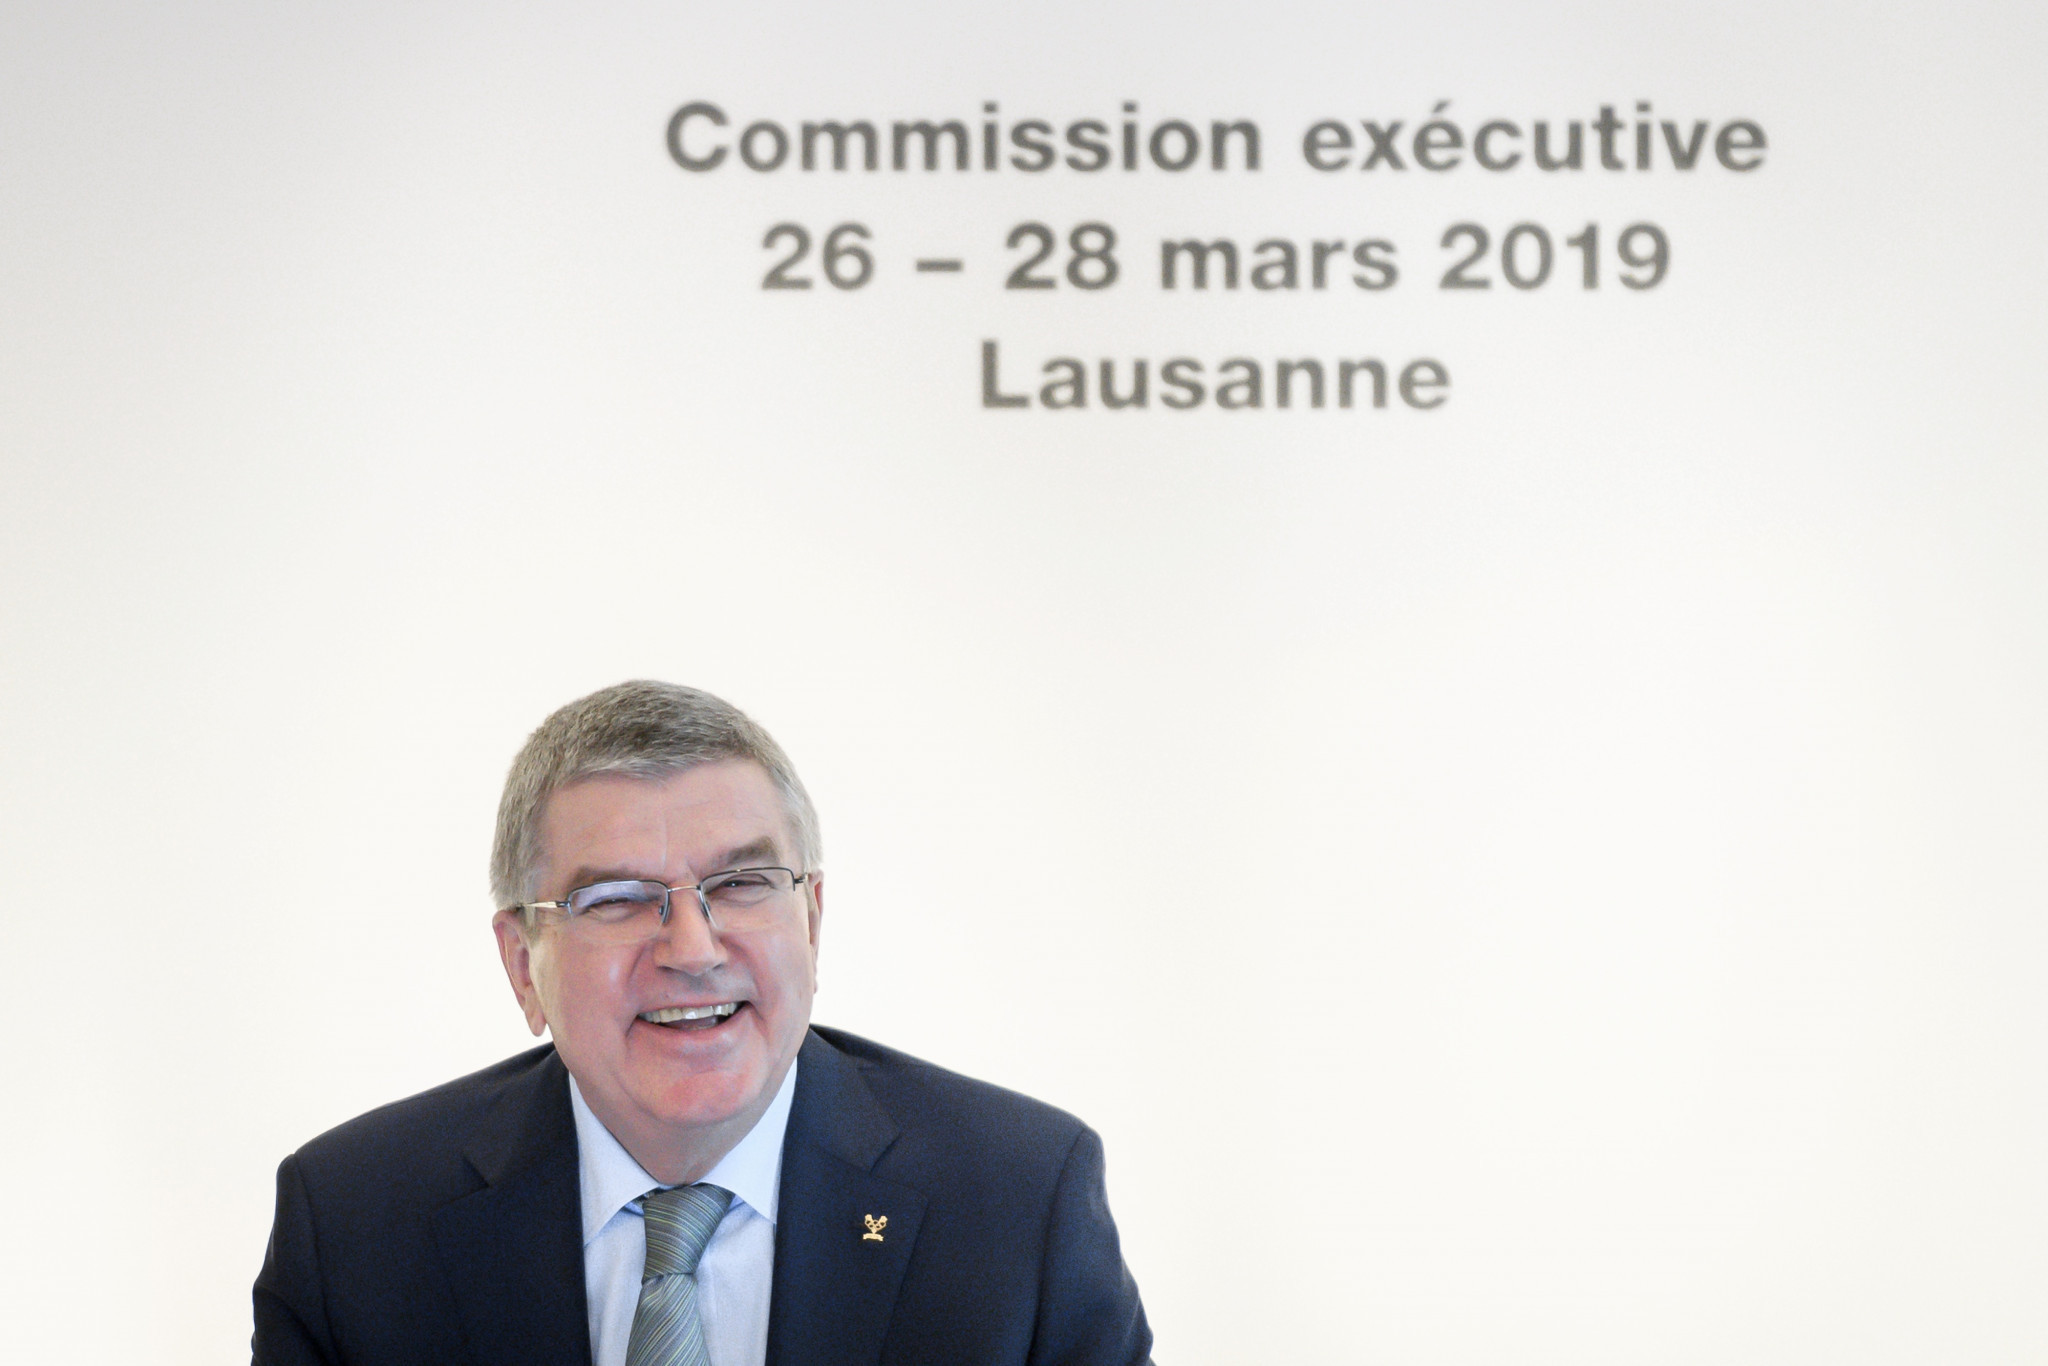 IOC President Thomas Bach is set to take part in a question-and-answer session on Sunday ©Getty Images